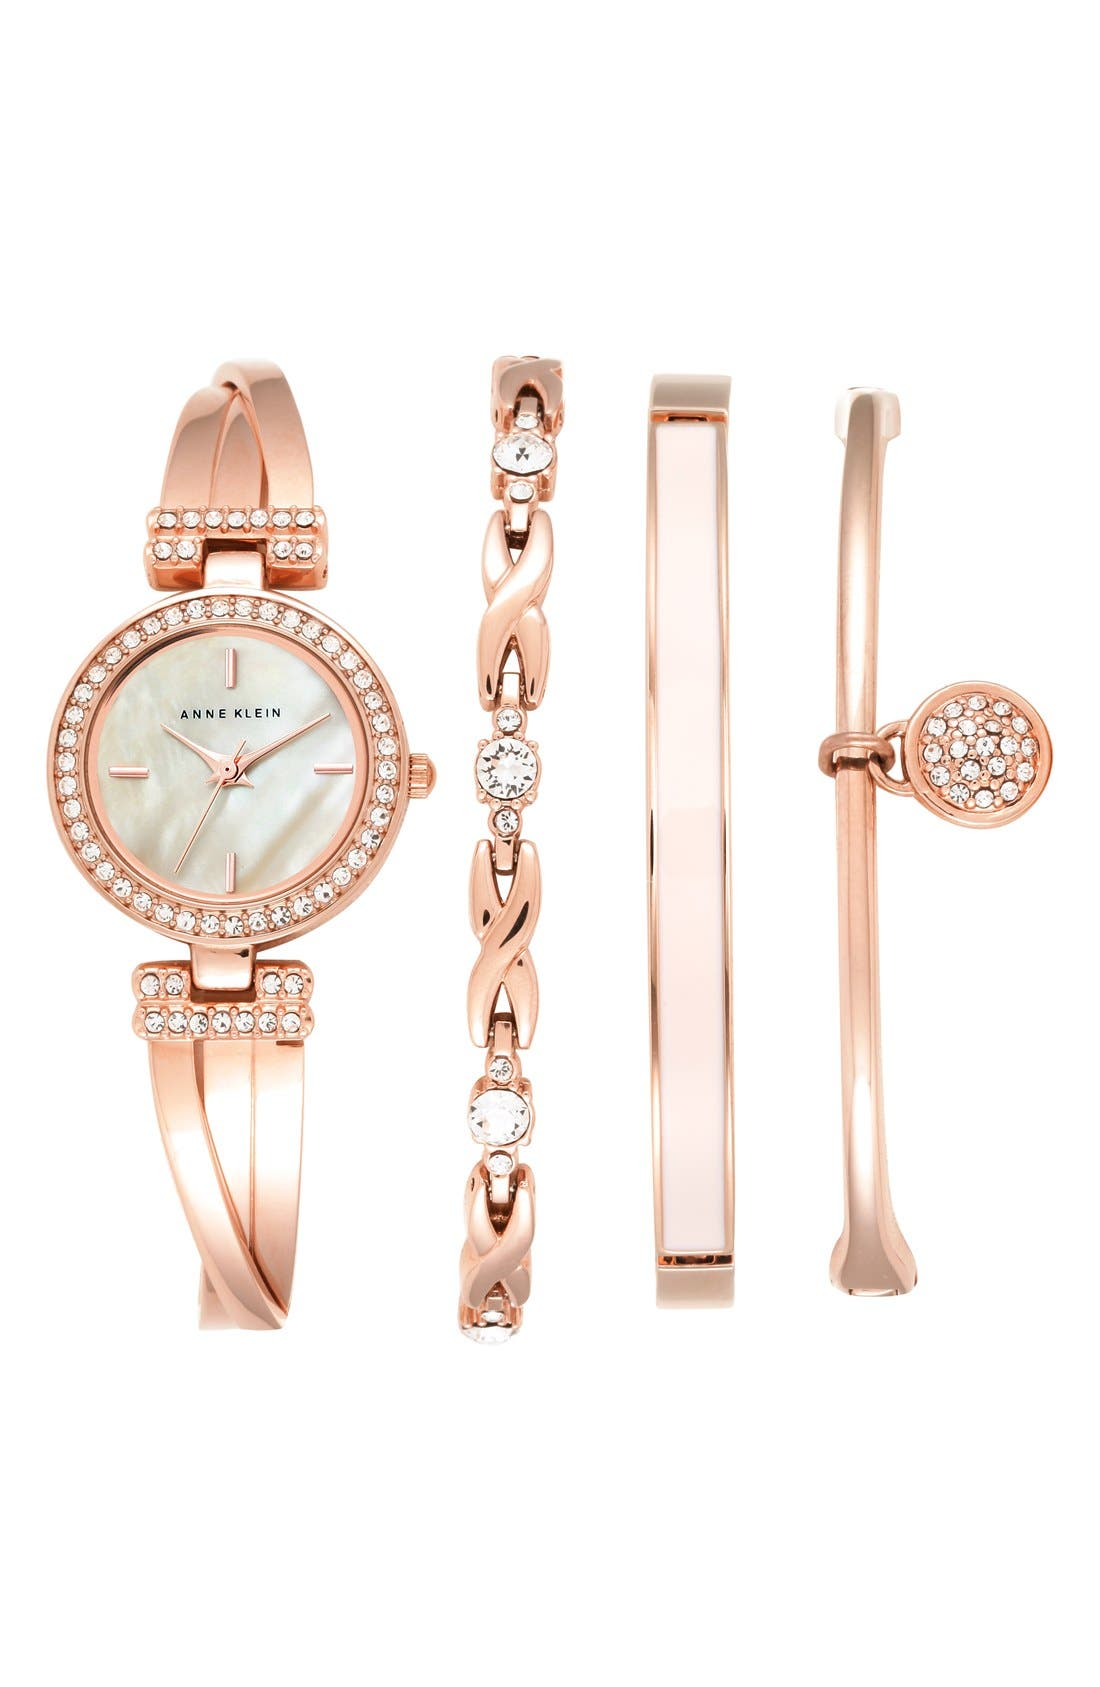 Main Image - Anne Klein Boxed Bracelet & Bangle Watch Set, 24mm